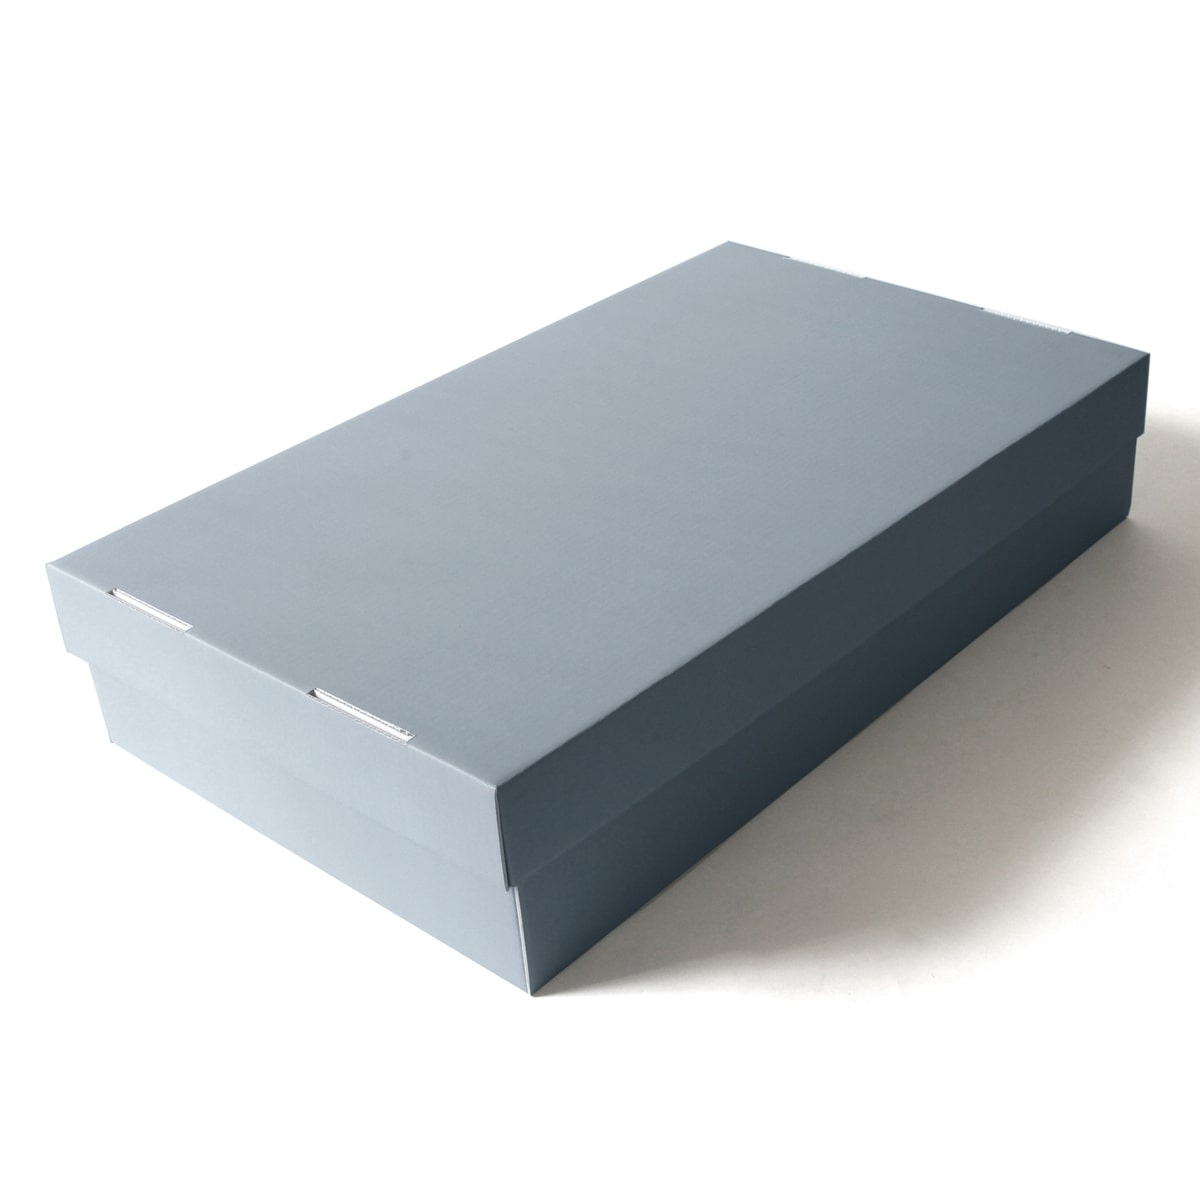 Fabric home storage boxes are one of the most versatile types of cleaning and housekeeping supplies on the market. The fabric construction of the storage containers make these items lightweight and very portable options for many home storage needs.